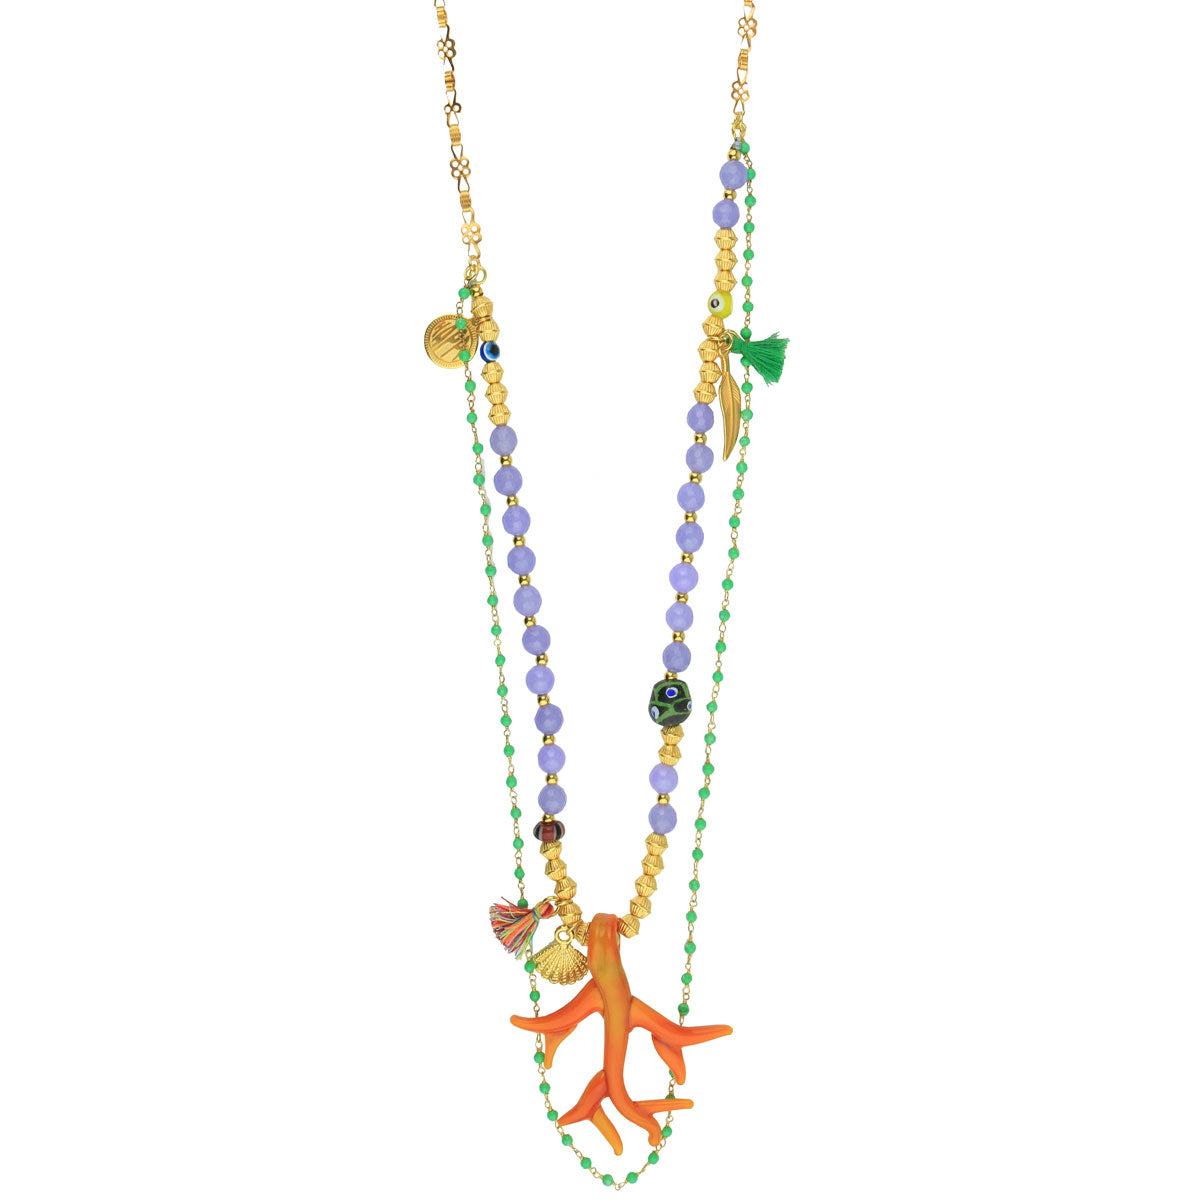 Orange Murano Pendant Long Necklace With Charms and Semiprecious Stones